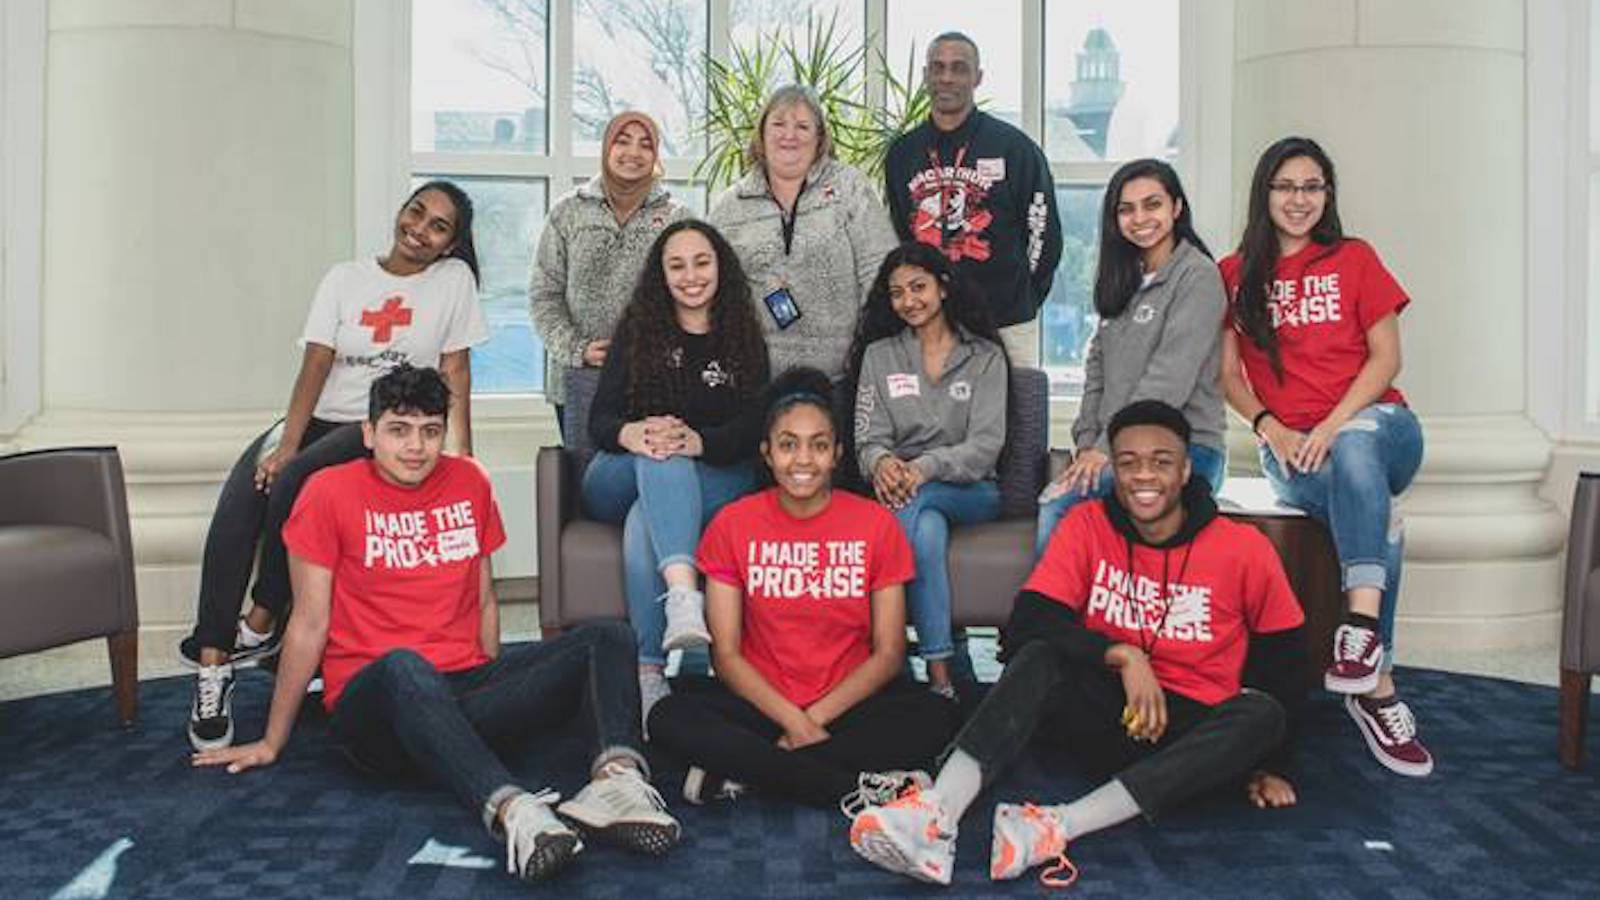 Dallas County Promise, launched by The Commit Partnership, is a coalition created to ease the burden of attending college through financial aid grants. The program also pairs students with success coaches.